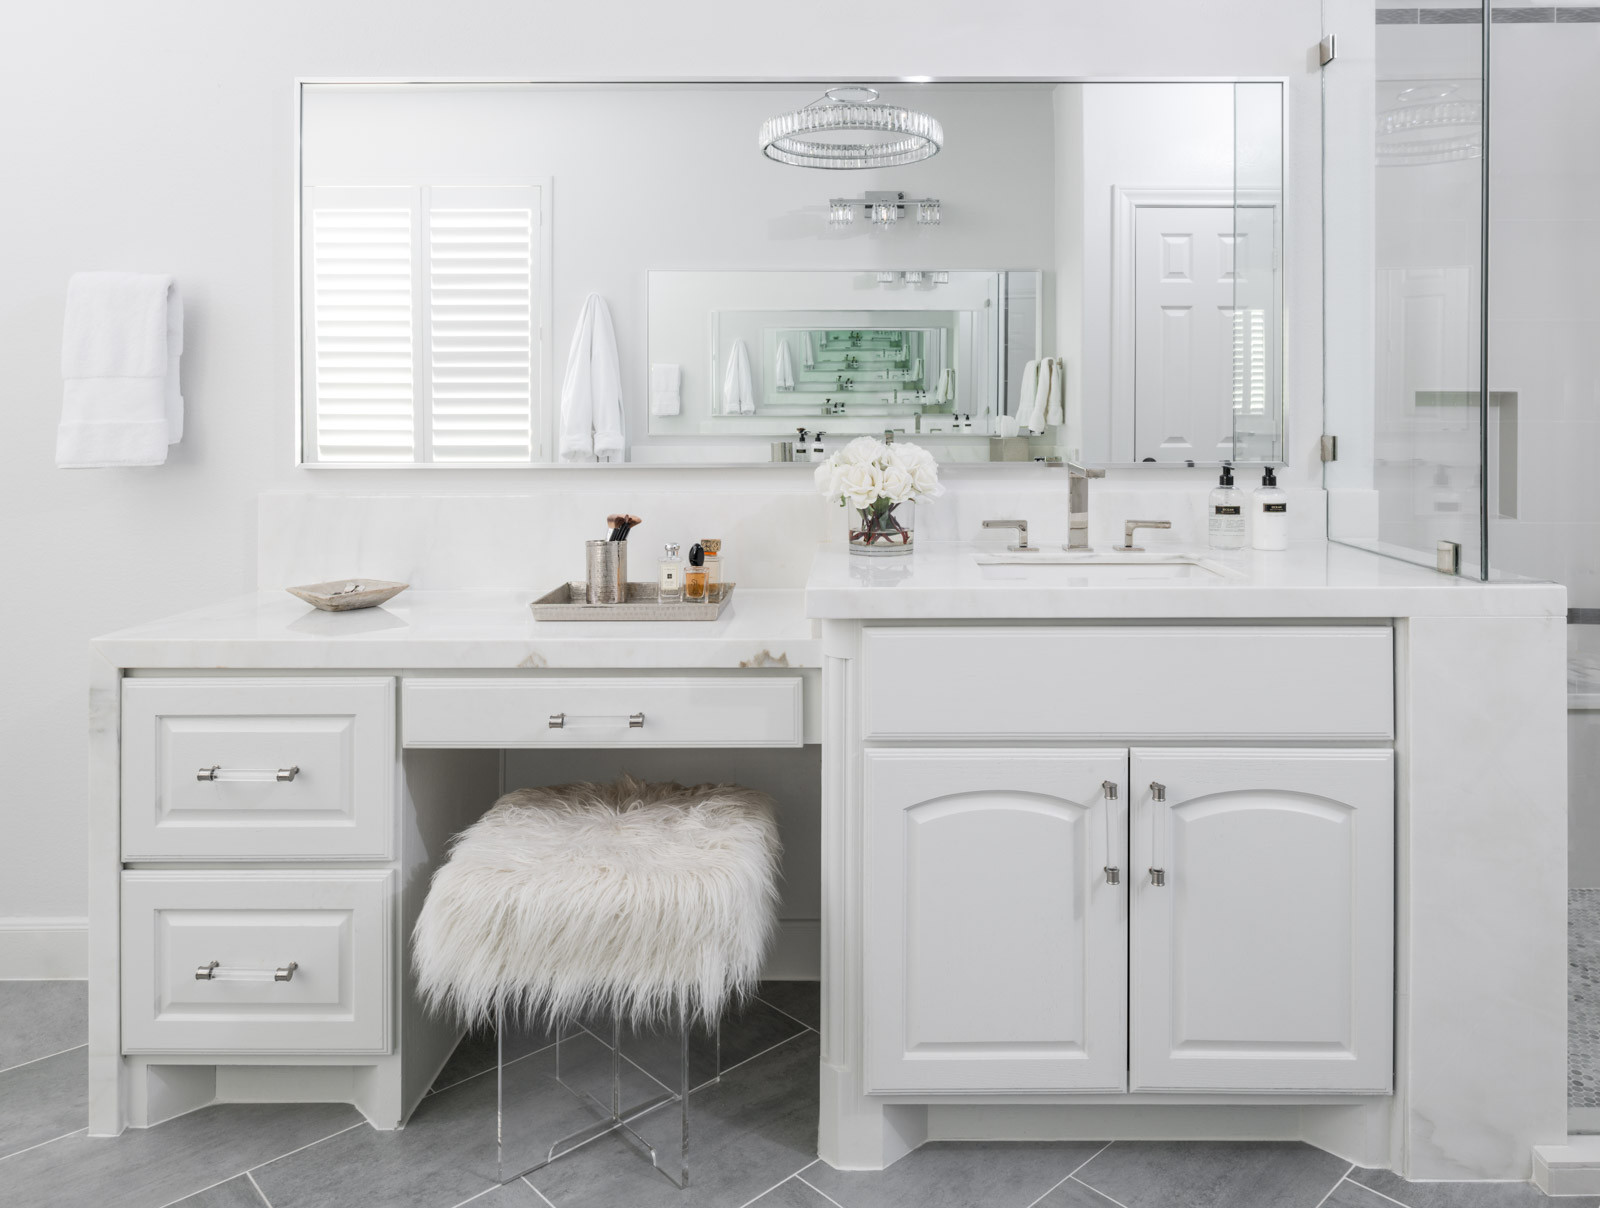 75 Beautiful Turquoise Bathroom Pictures Ideas January 2021 Houzz